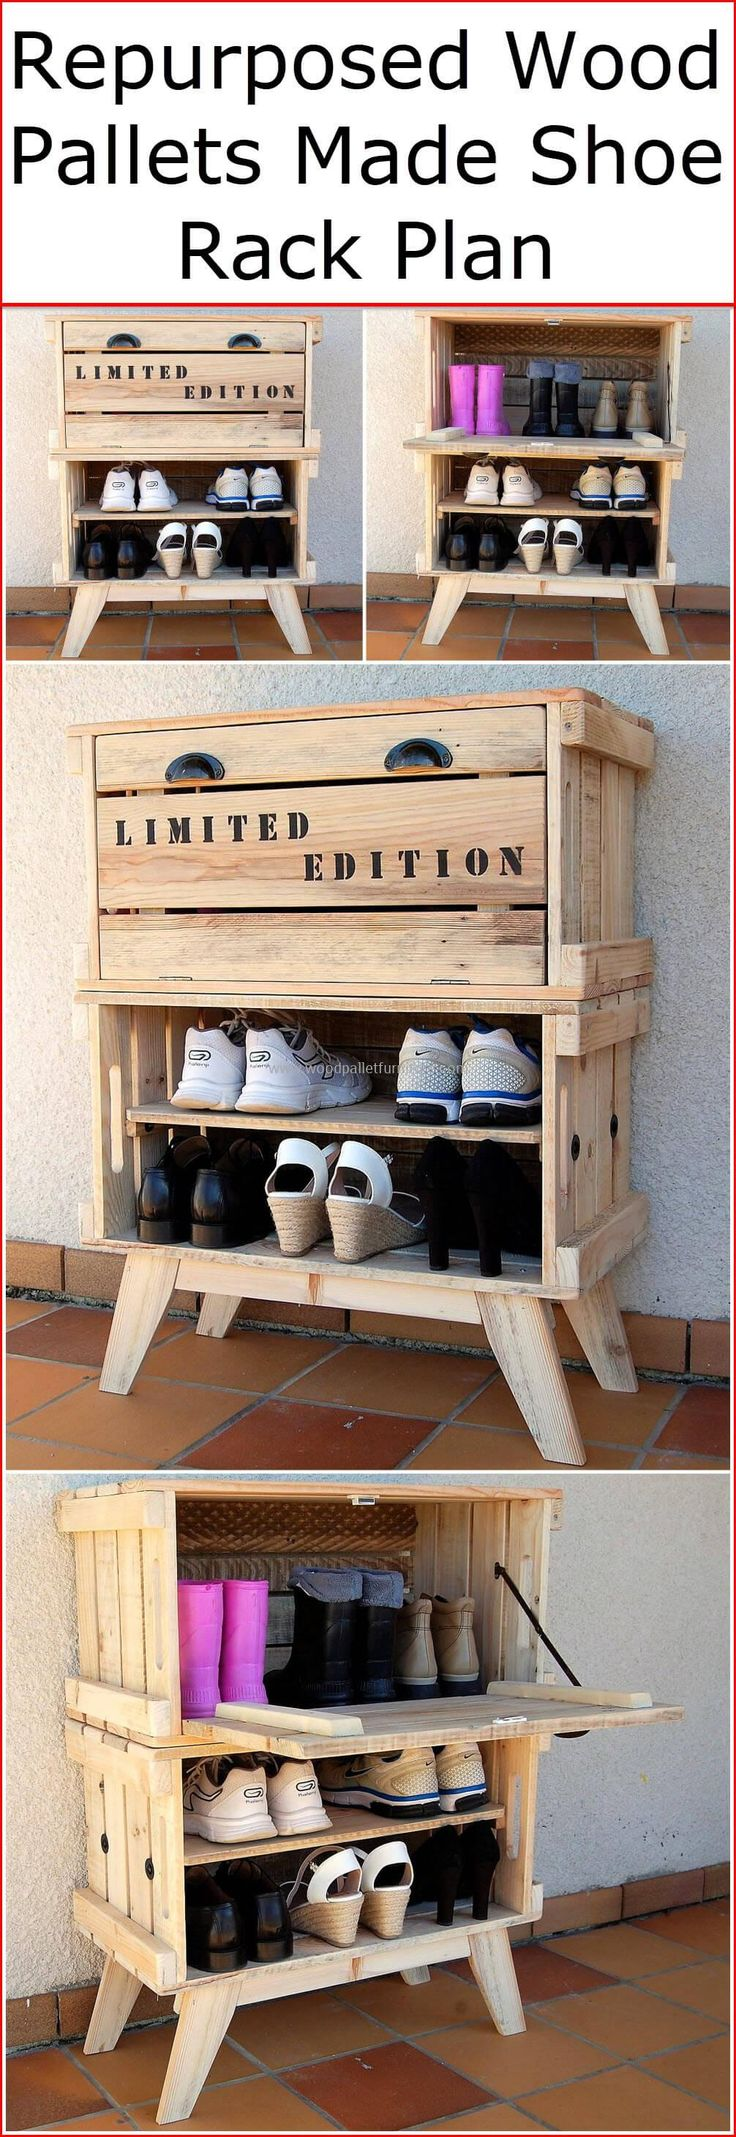 A wooden made shoe racks are a quite useful product so that they have become an essential need of every house. A spacious shoe rack makes you able to place your shoes in an organized way. If you are looking to buy a new wooden shoe rack for your home, then for sure you must be worried about it's high-costs. #pallets #woodpallet #palletfurniture #palletproject #palletideas #recycle #recycledpallet #reclaimed #repurposed #reused #restore #upcycle #diy #palletart #pallet #recycling #upcycling